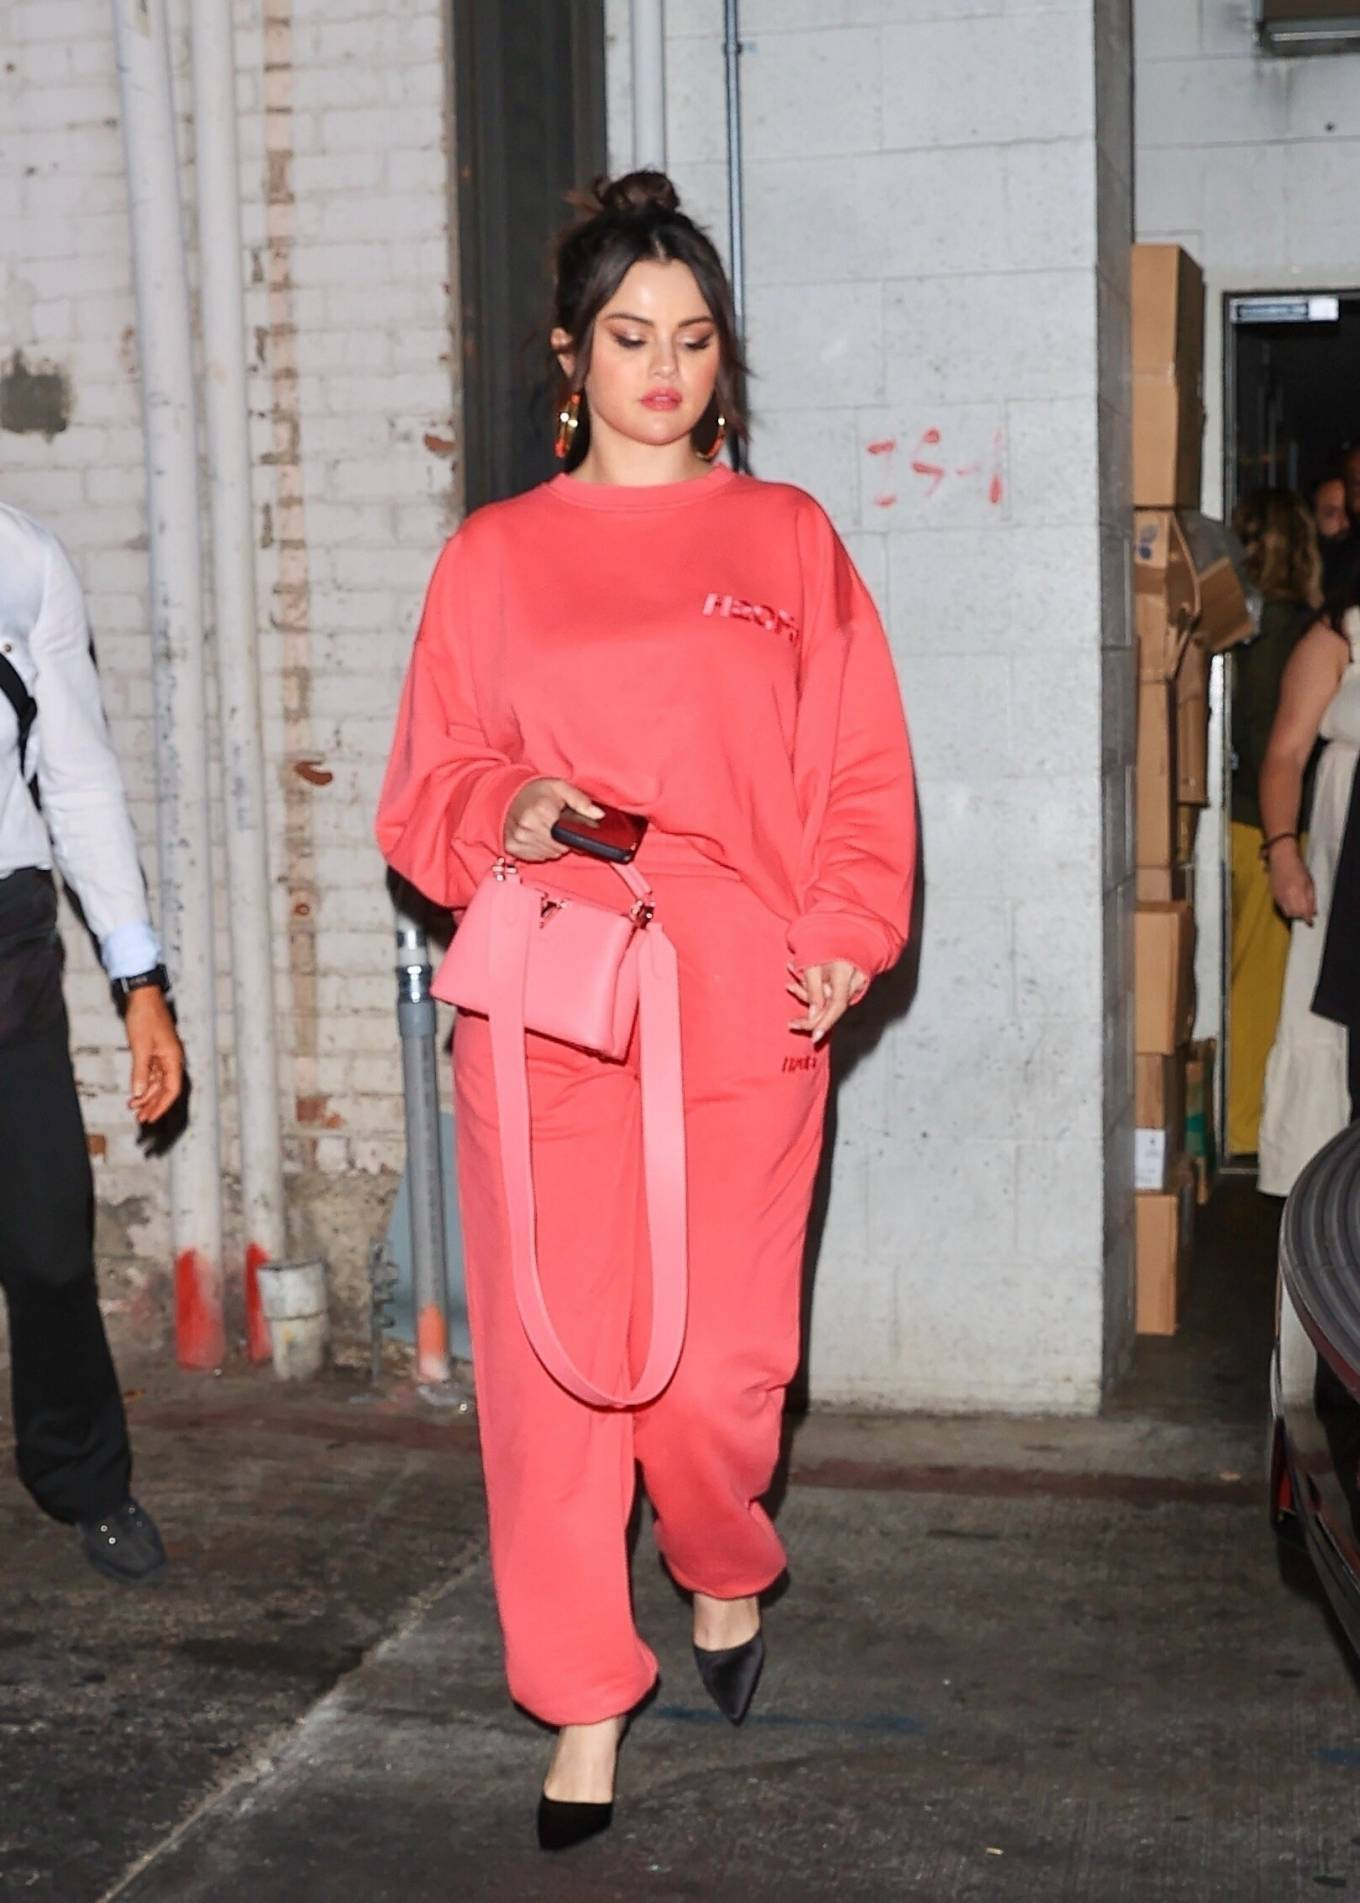 Selena Gomez rocking a oversized bright pink sweatshirt with a cotton material, full sleeves, brand logo and a crew neck